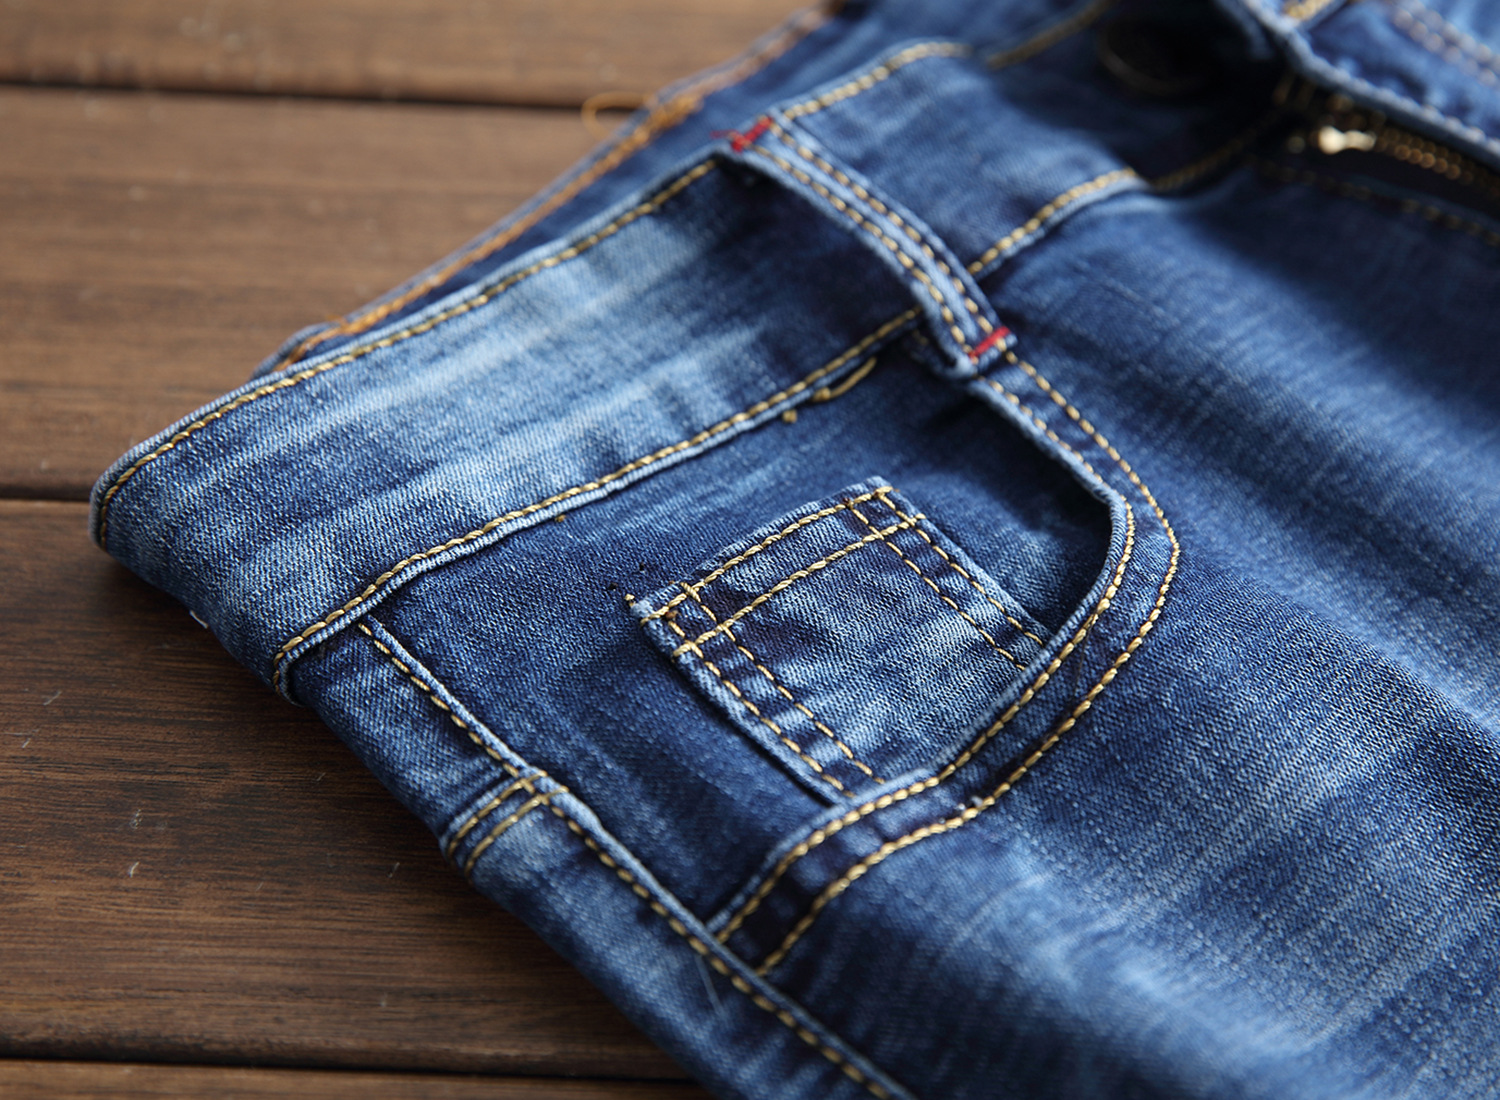 bull-puncher knickers male thin pants in the summer embroidery straight five points of cultivate morality men jeans